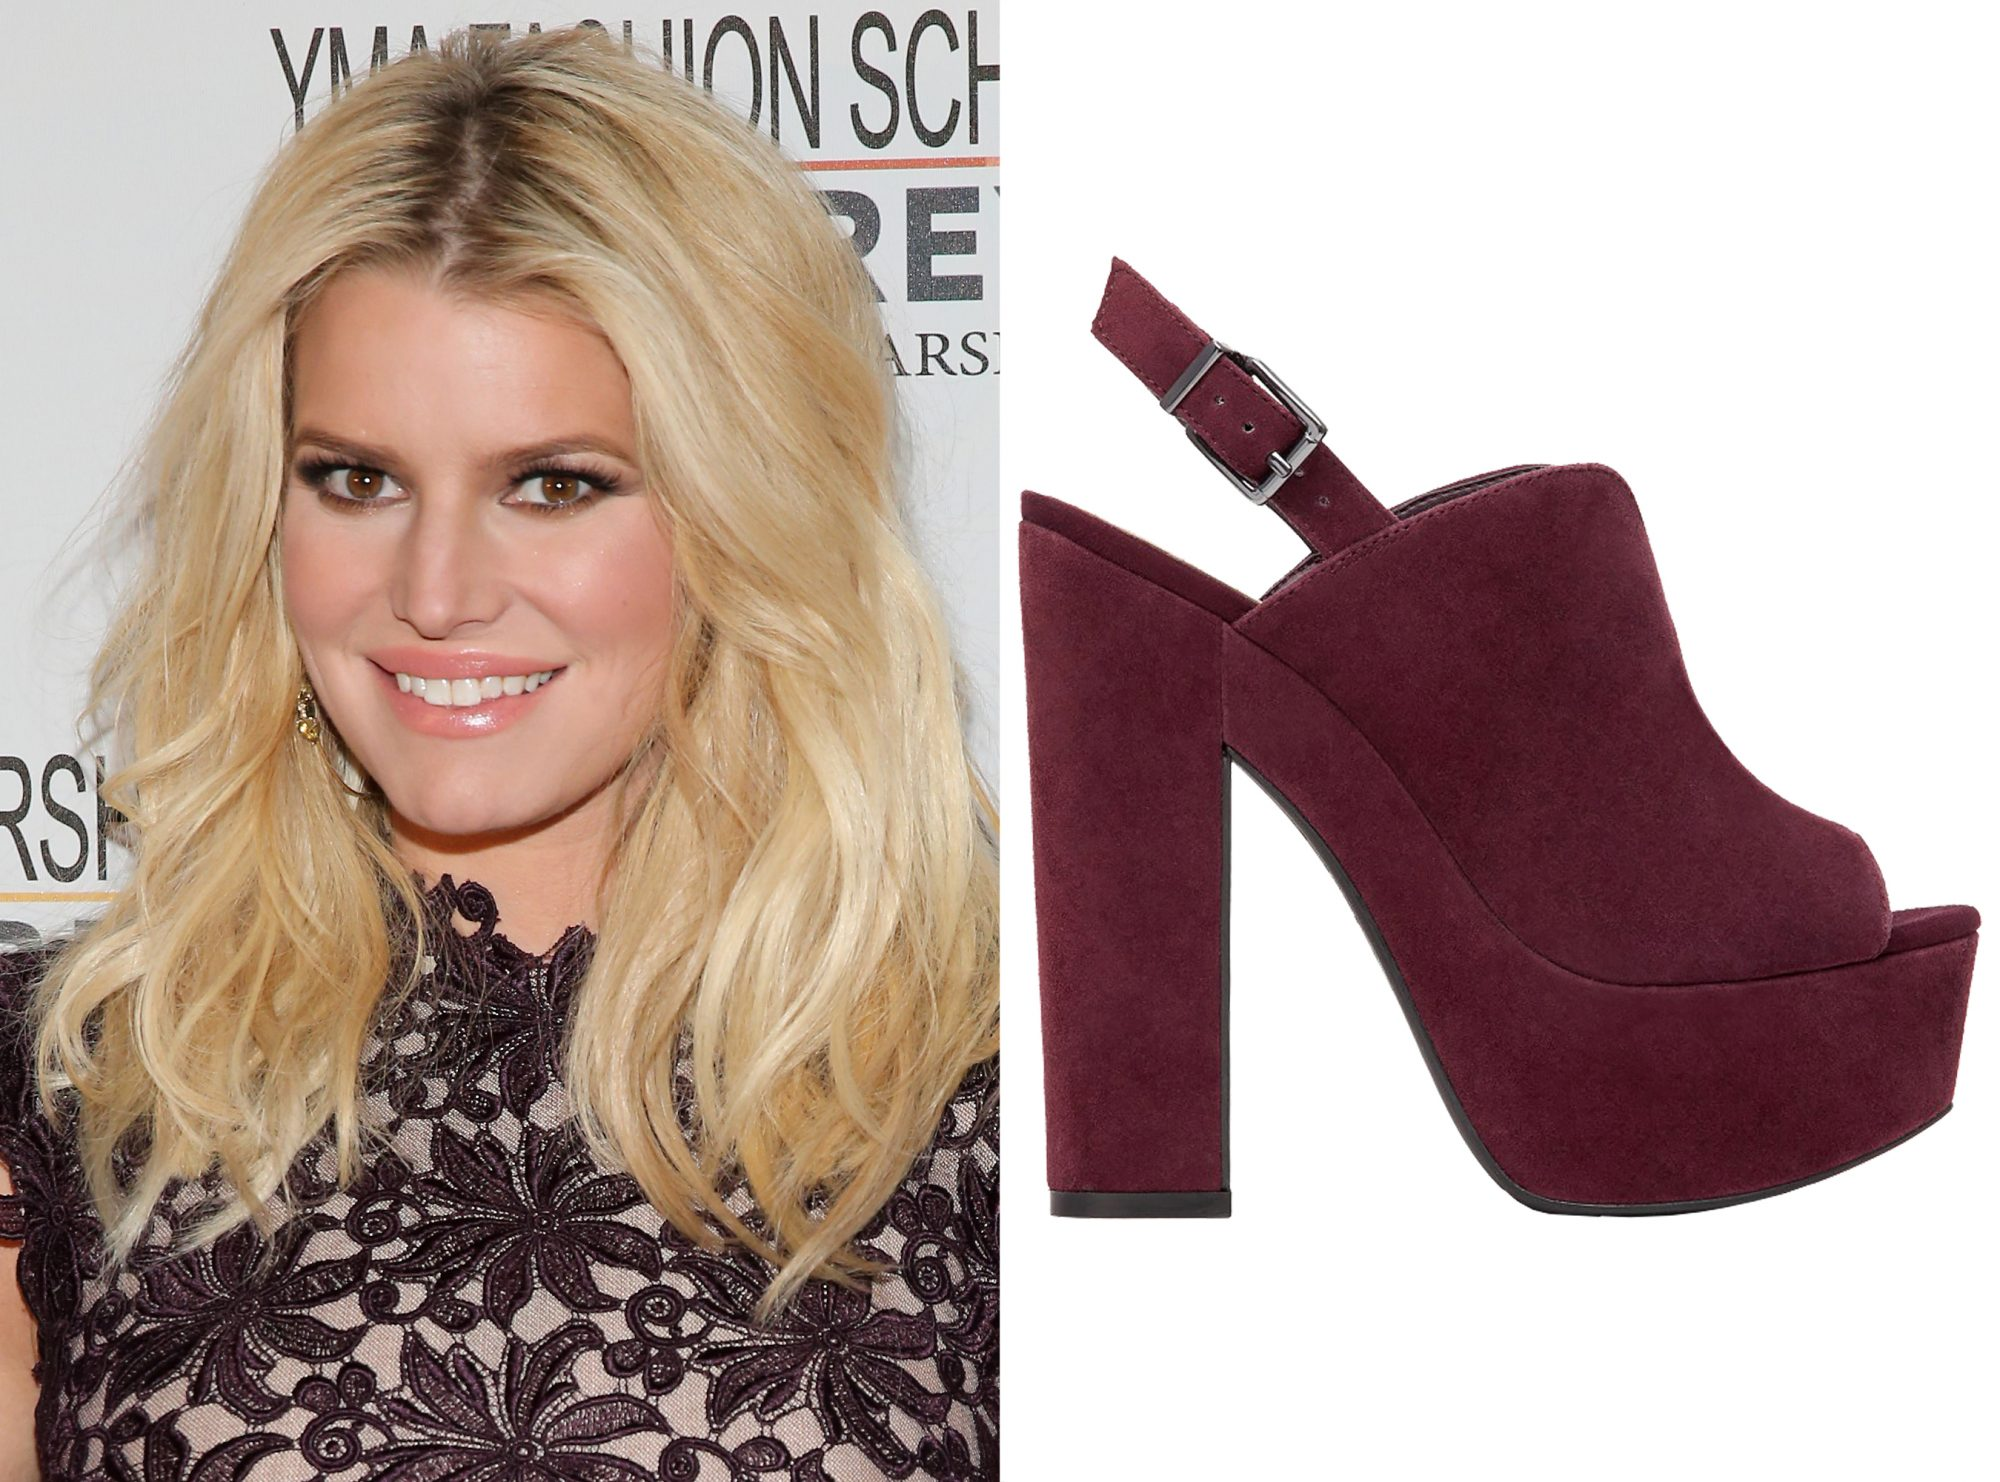 <p>JESSICA SIMPSON and THE WARM UP: Jessica Simpson</p>